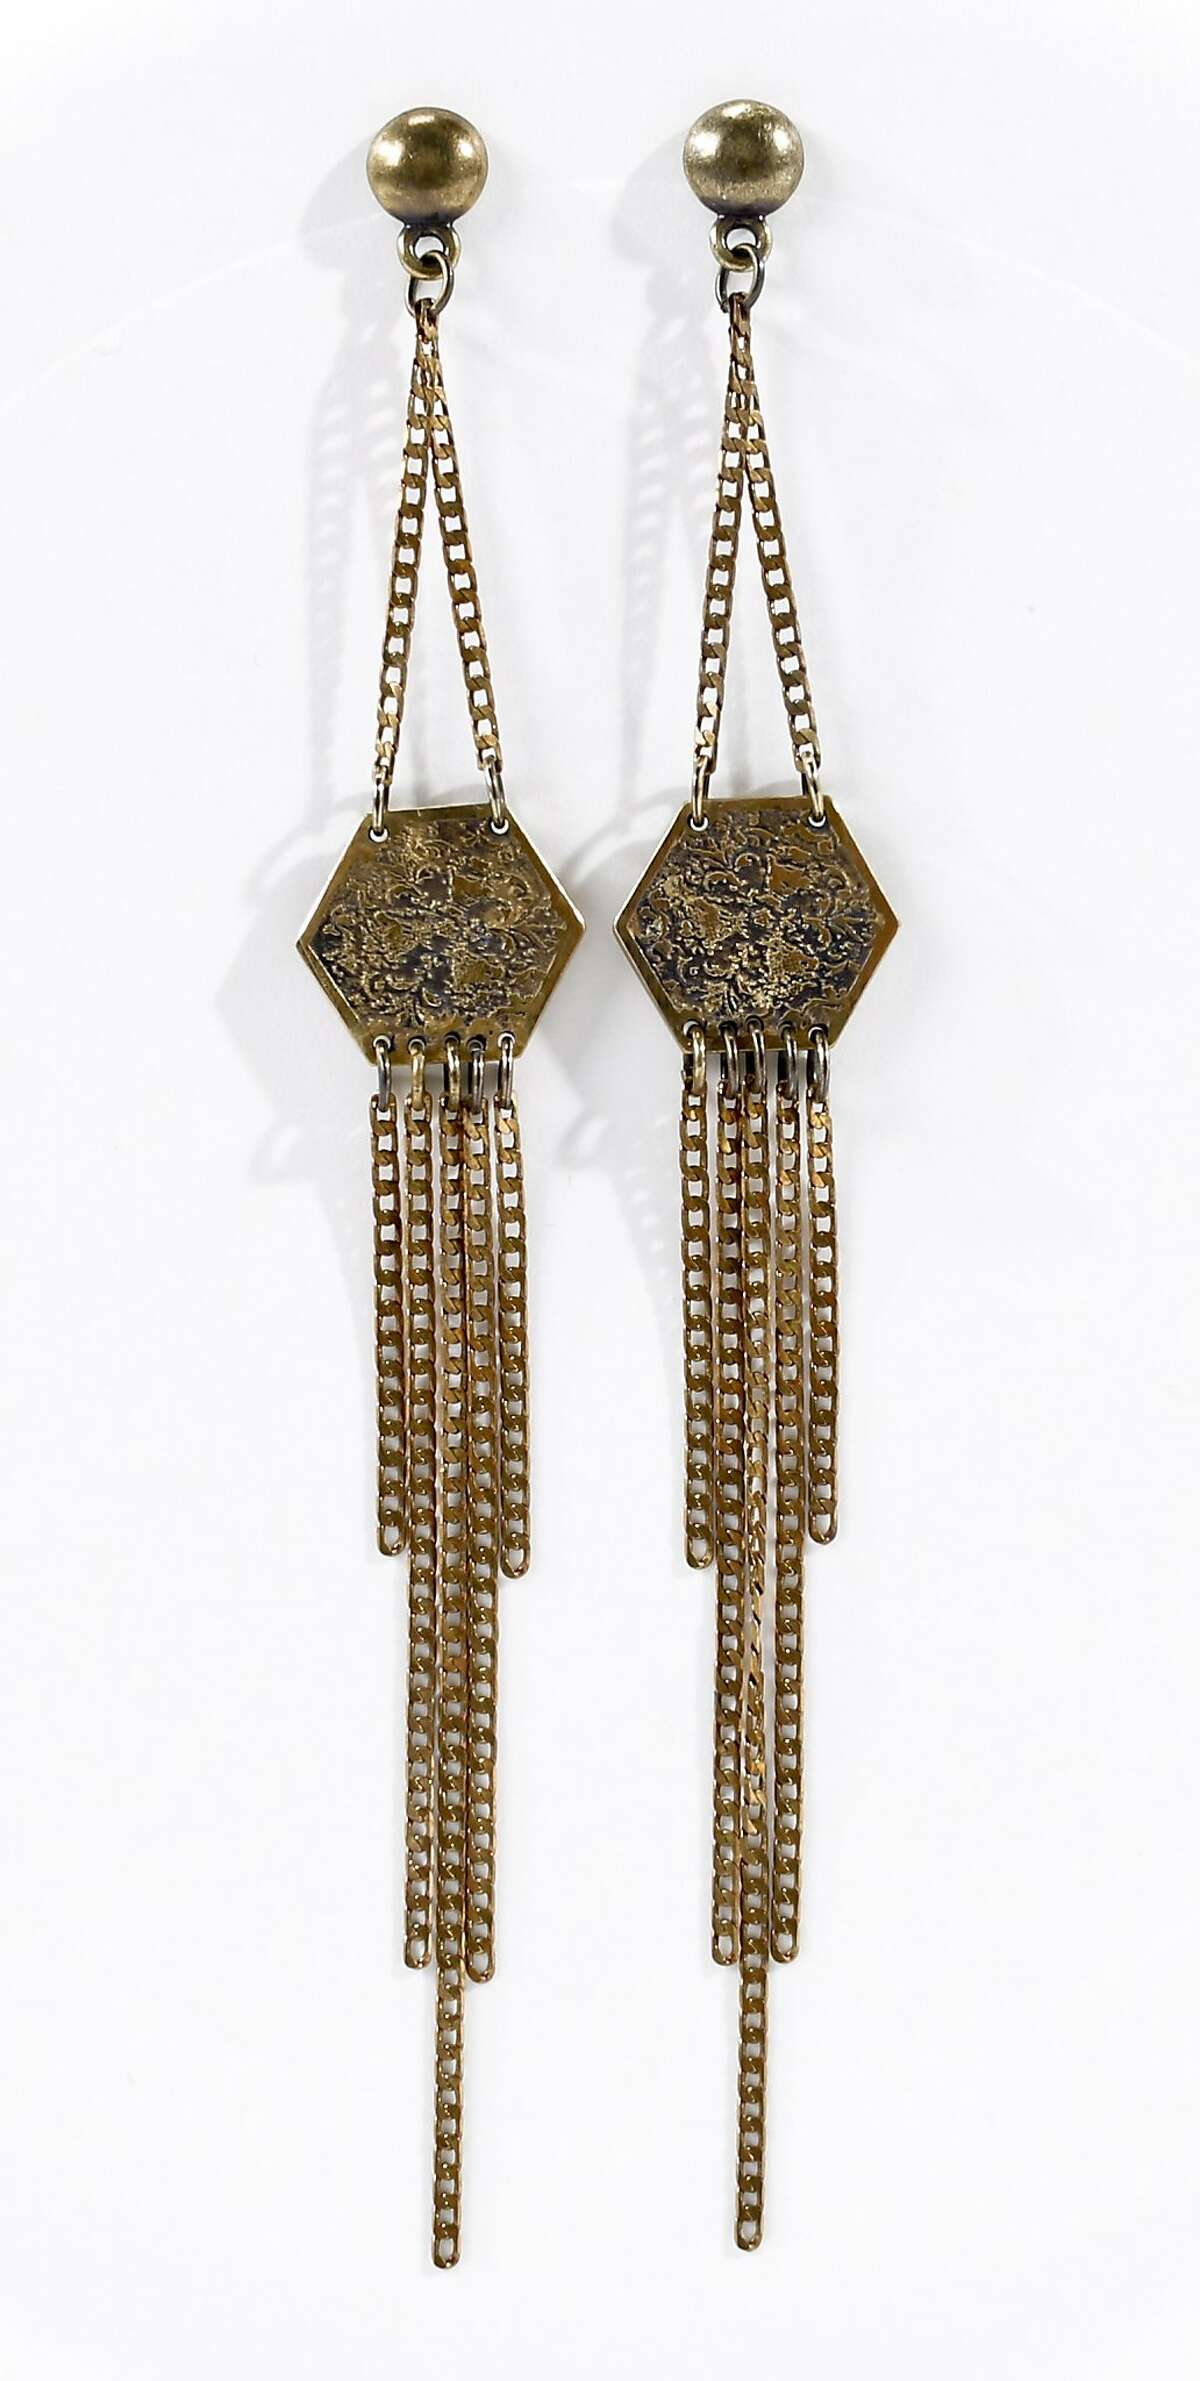 Earrings by Annachich Jewelry is seen on Friday, May 16, 2014 in San Francisco, Calif.